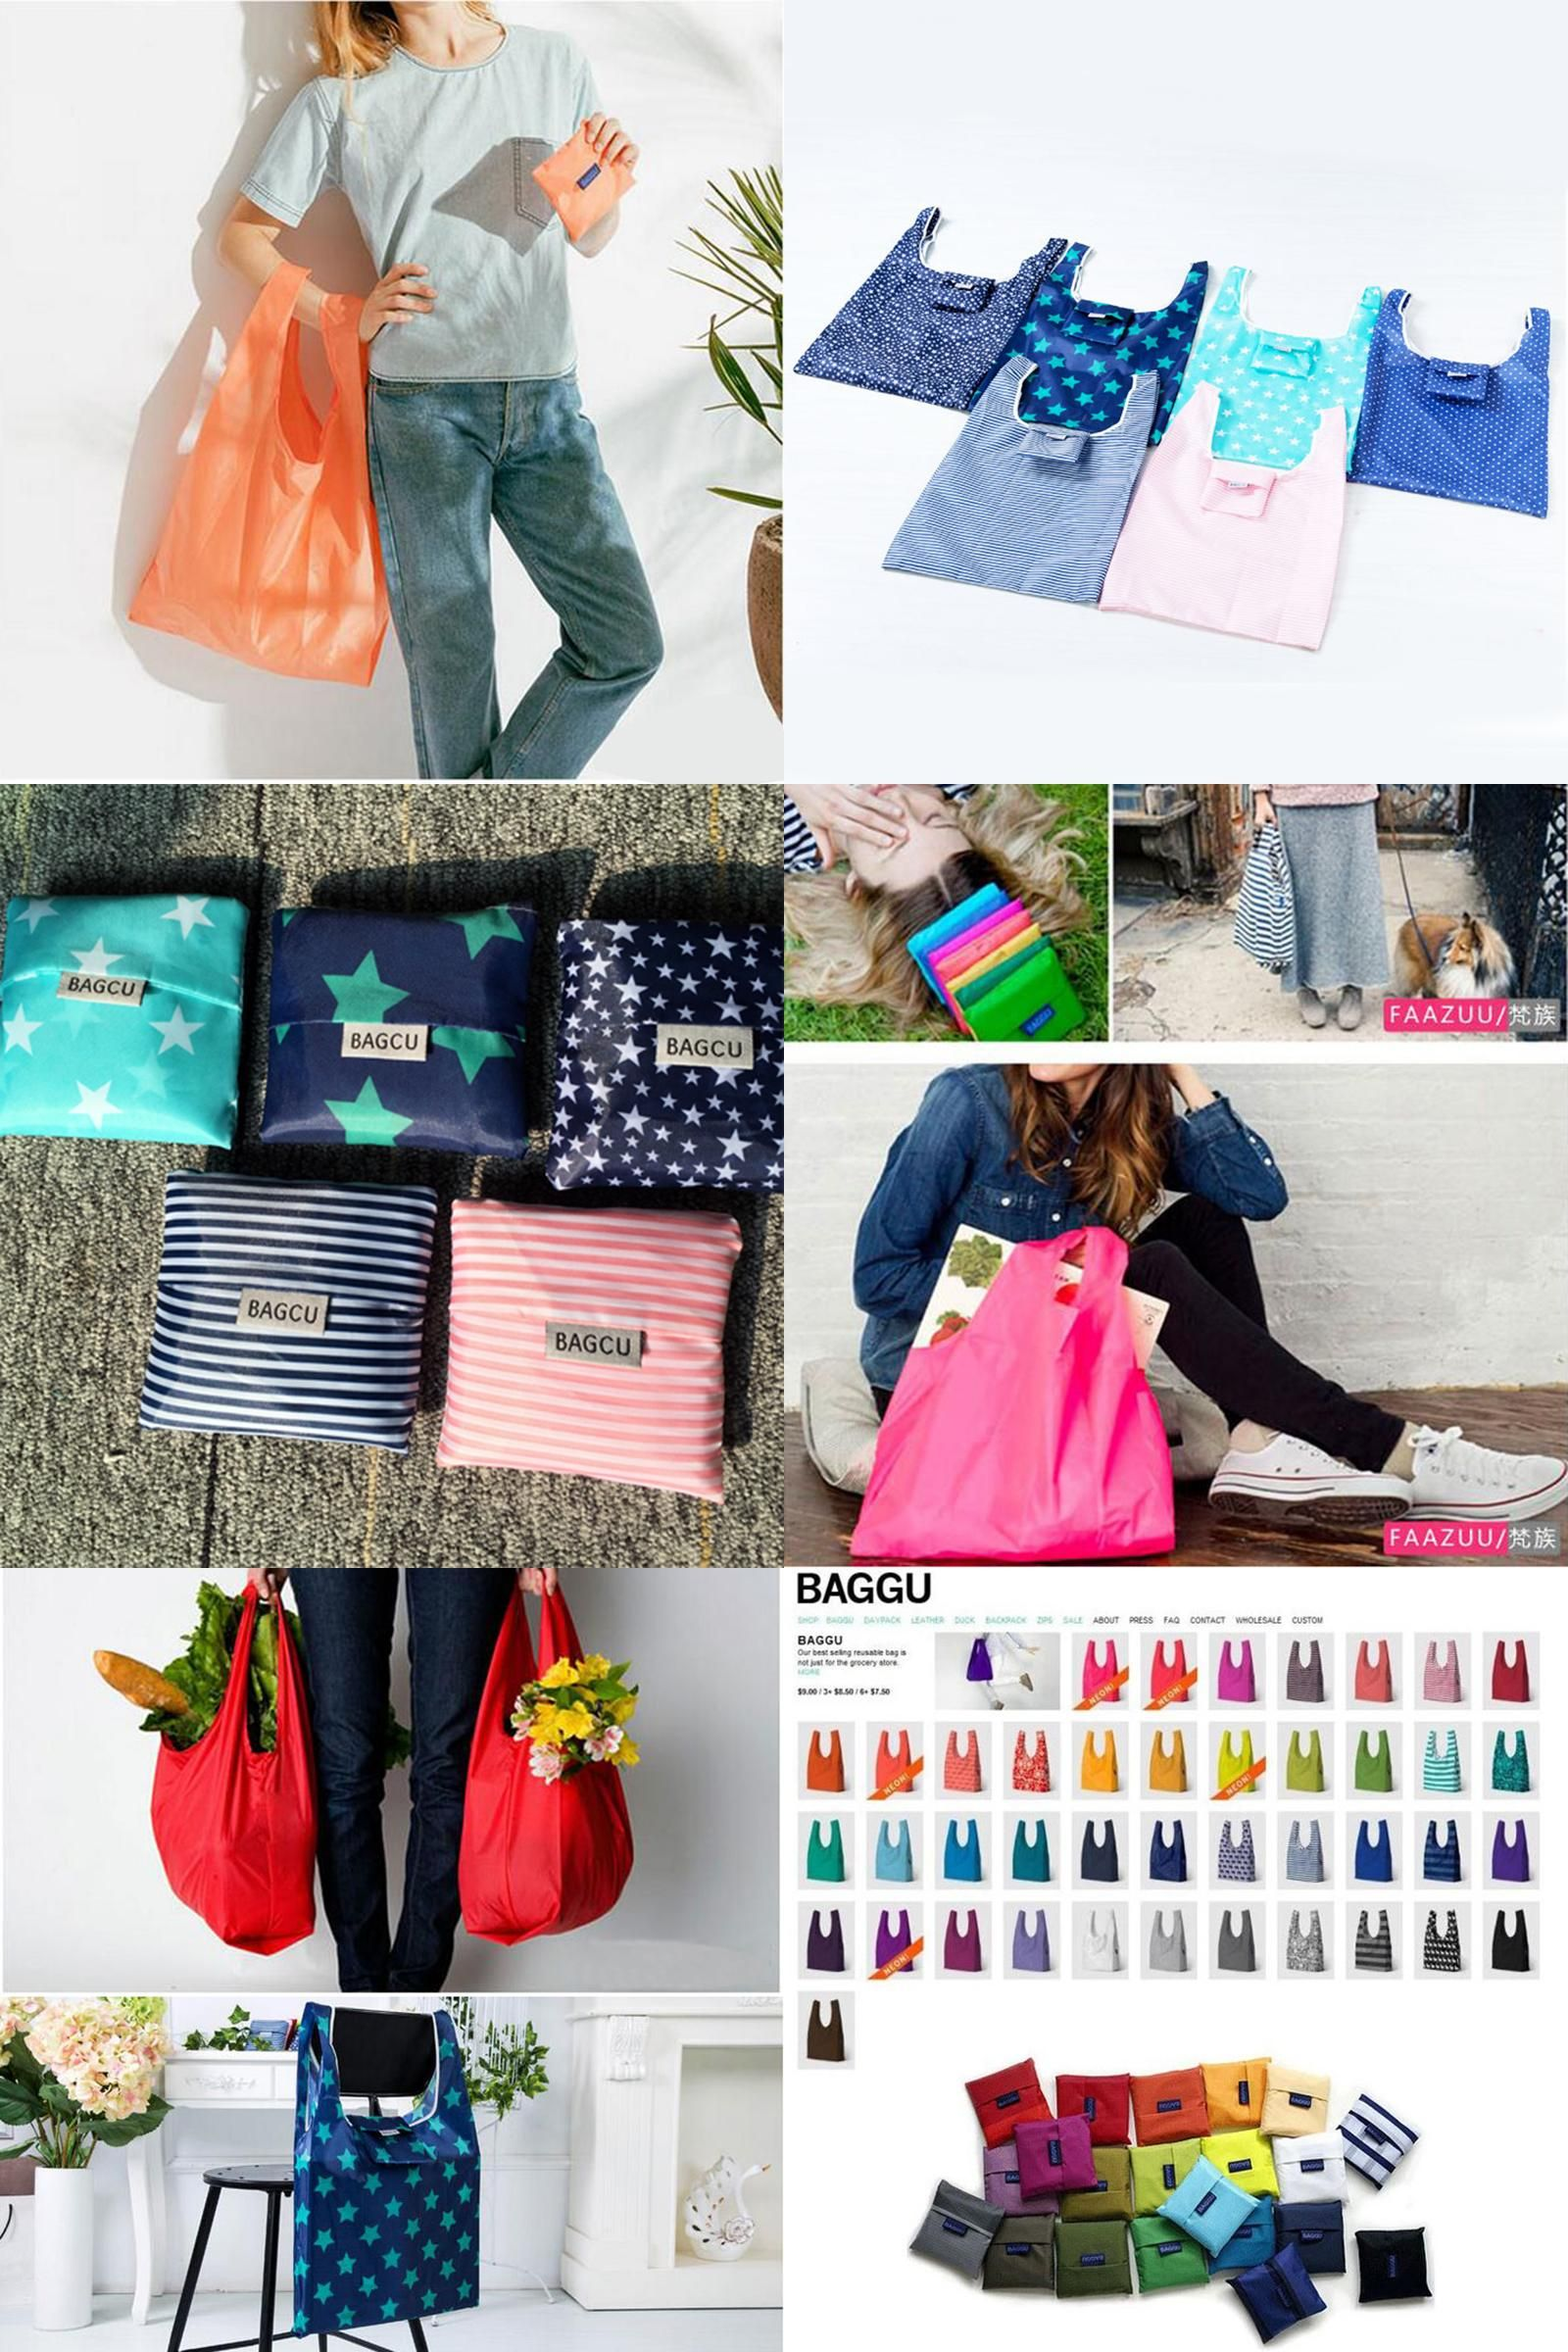 Visit to Buy  2017 Cabas Course Shopping Bag Candy colors Available  Eco-friendly a479a29f6618f